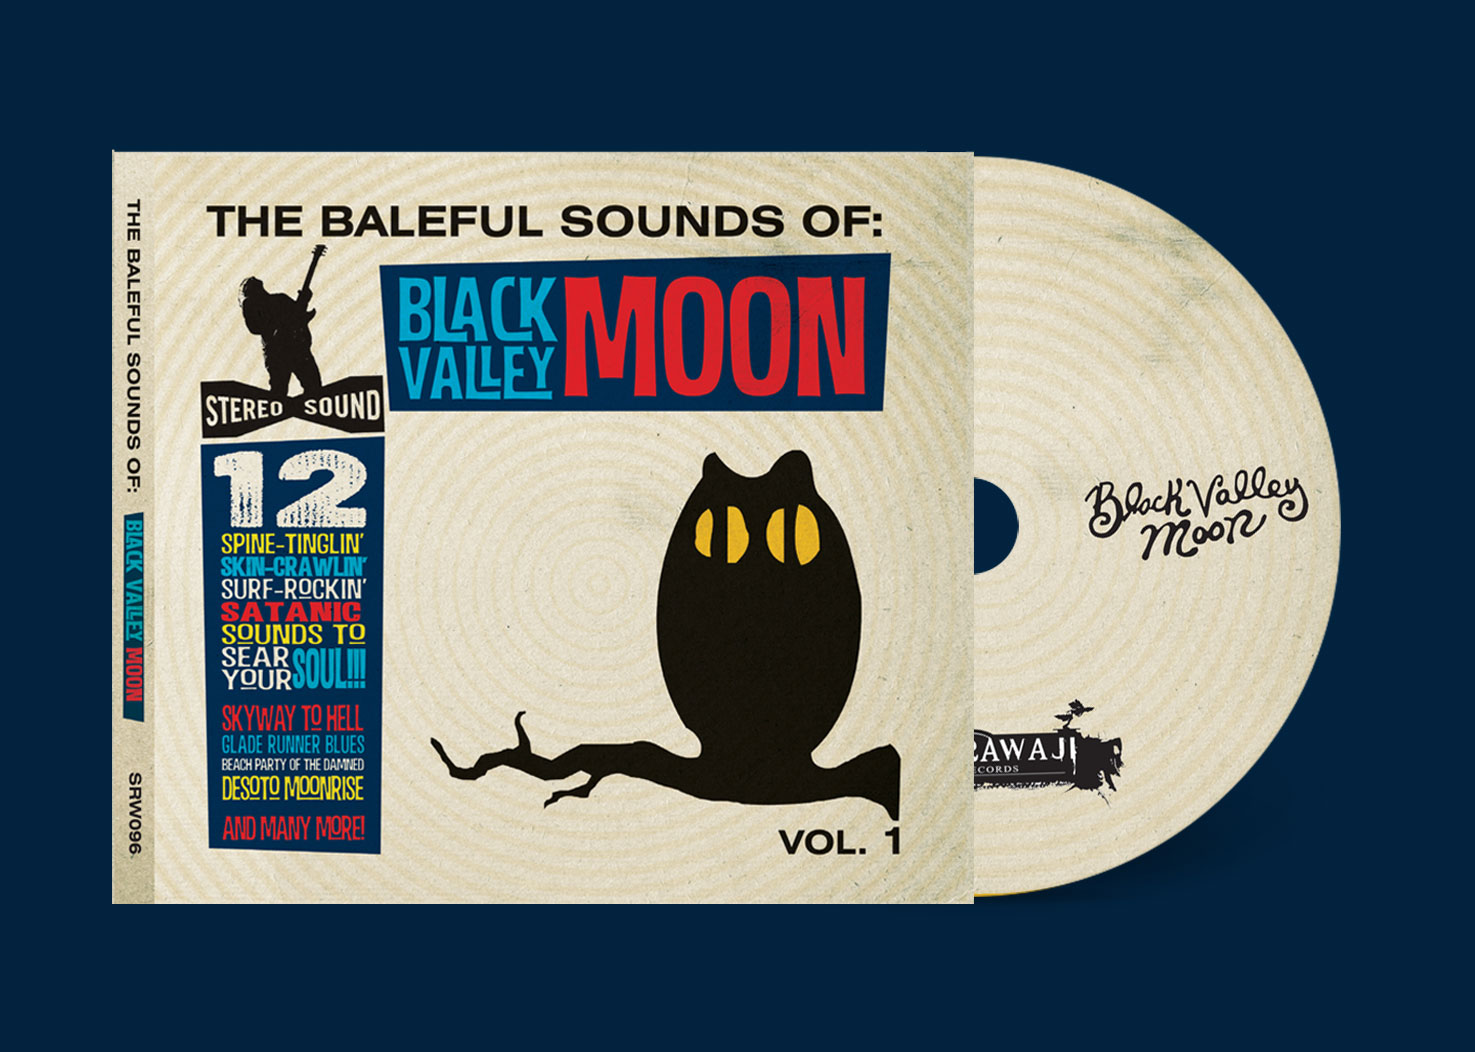 SRW095-Black-Valley-Moon-promo6 black-valley-moon-the-baleful-sounds-of-black-valley-moon-vol-1 | news | news